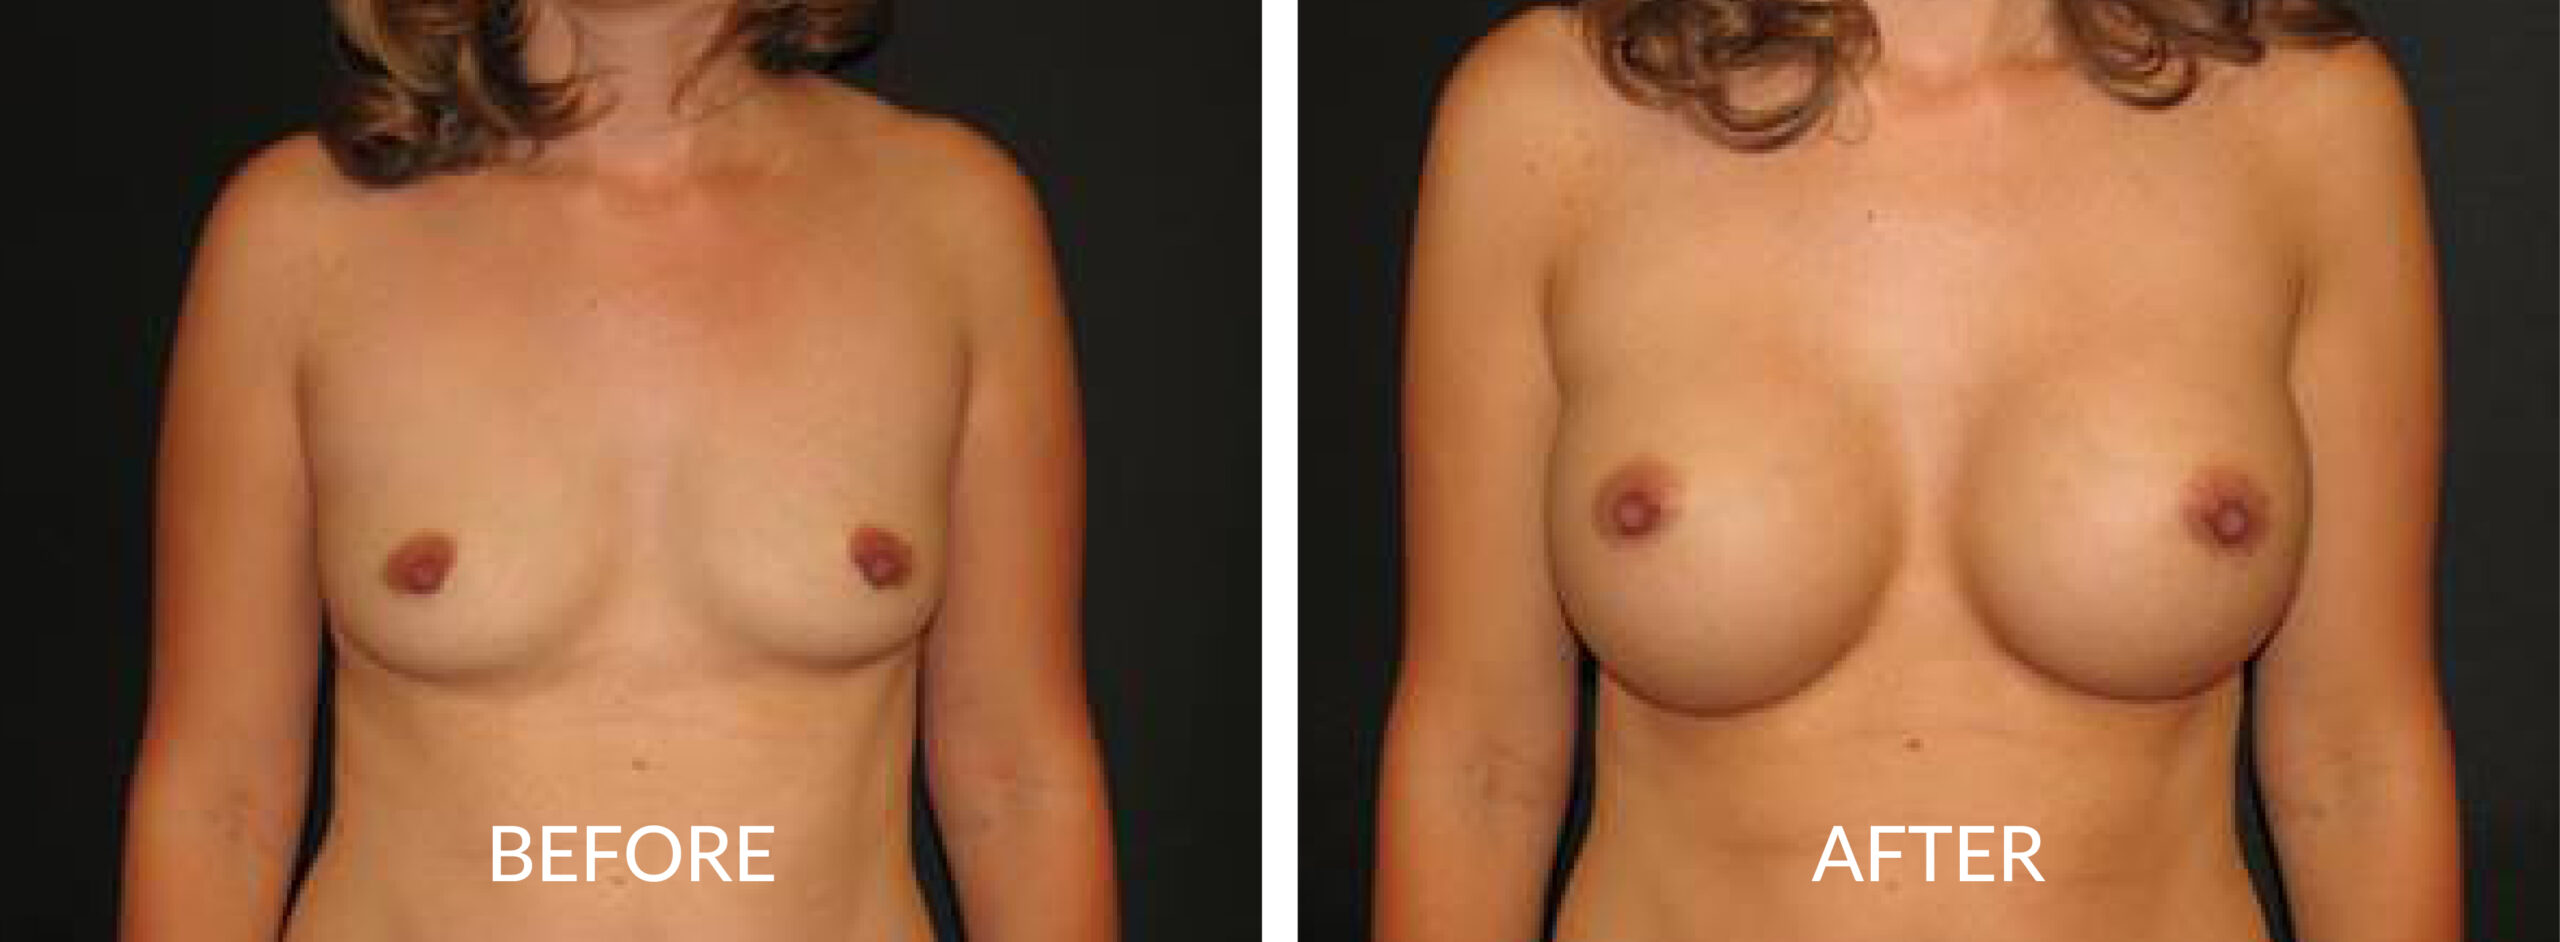 Before & After Breast Augmentation